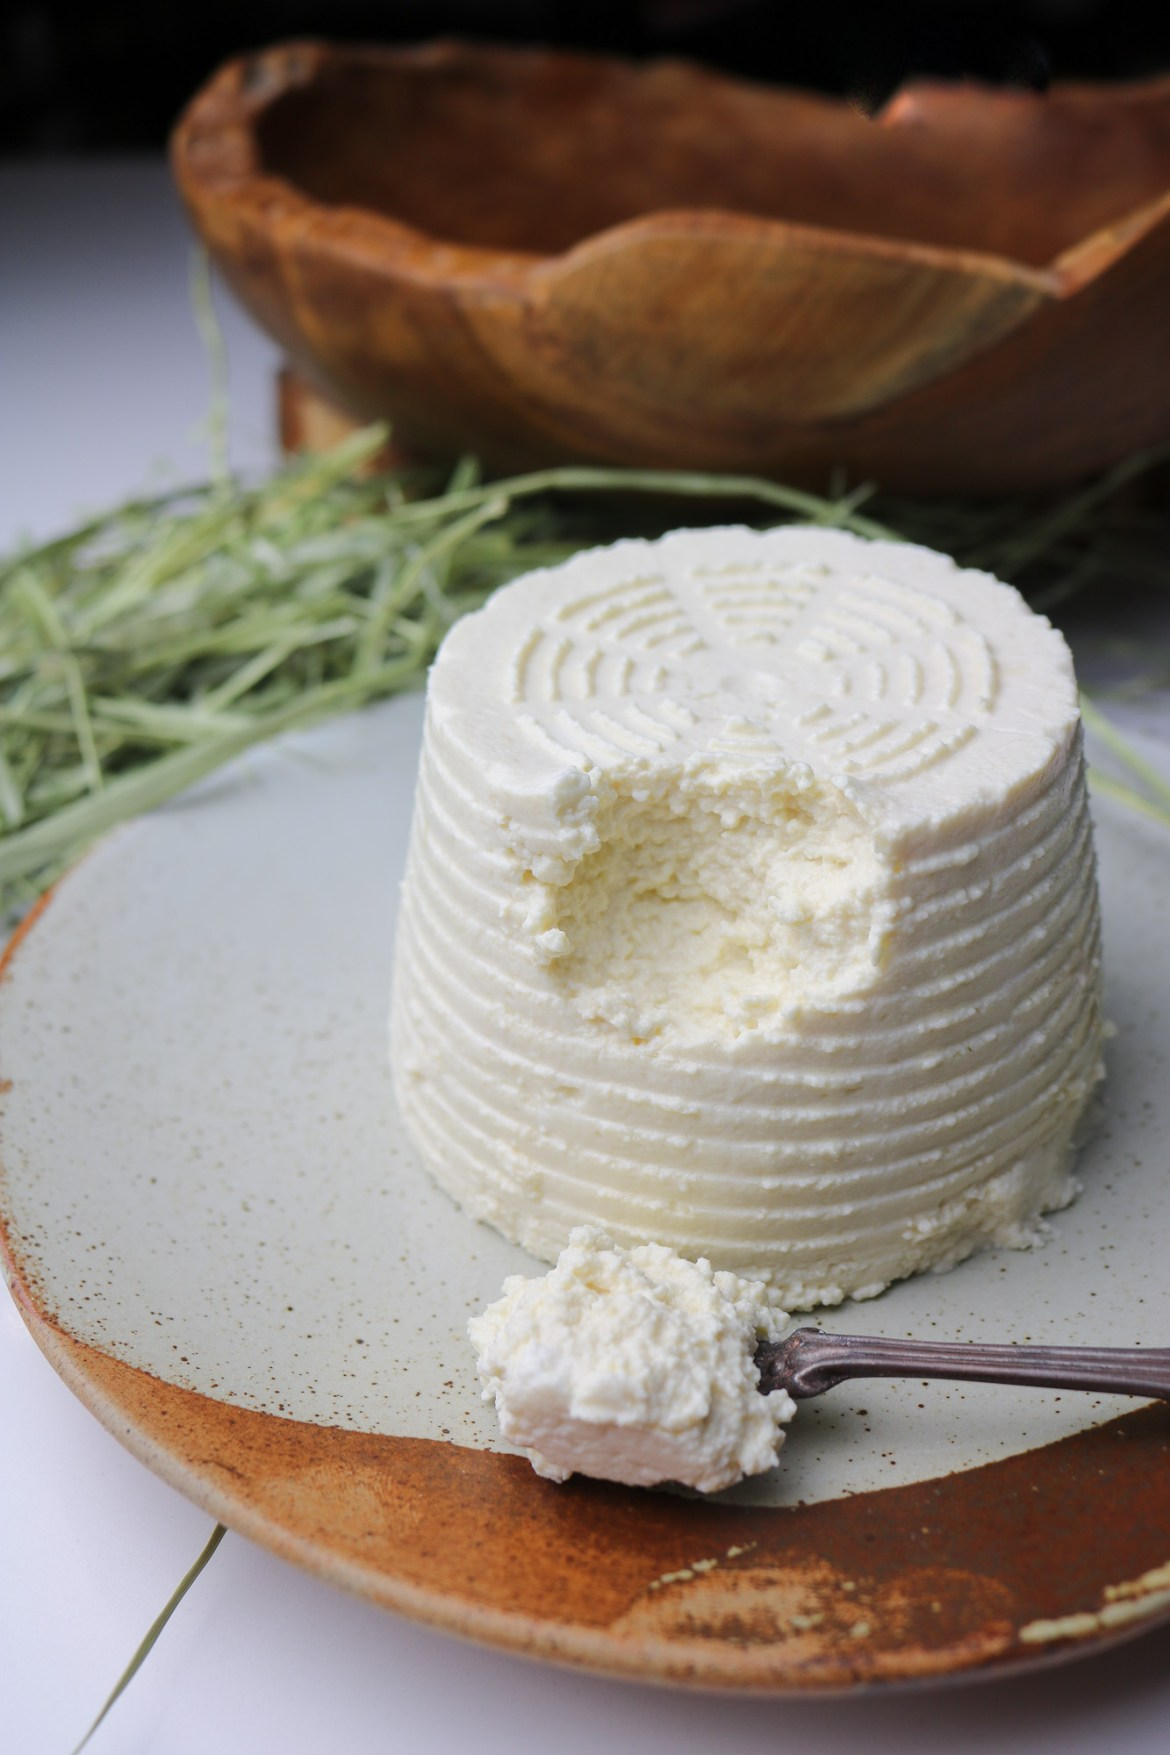 ricotta served on a plate with a spoonful of it closer